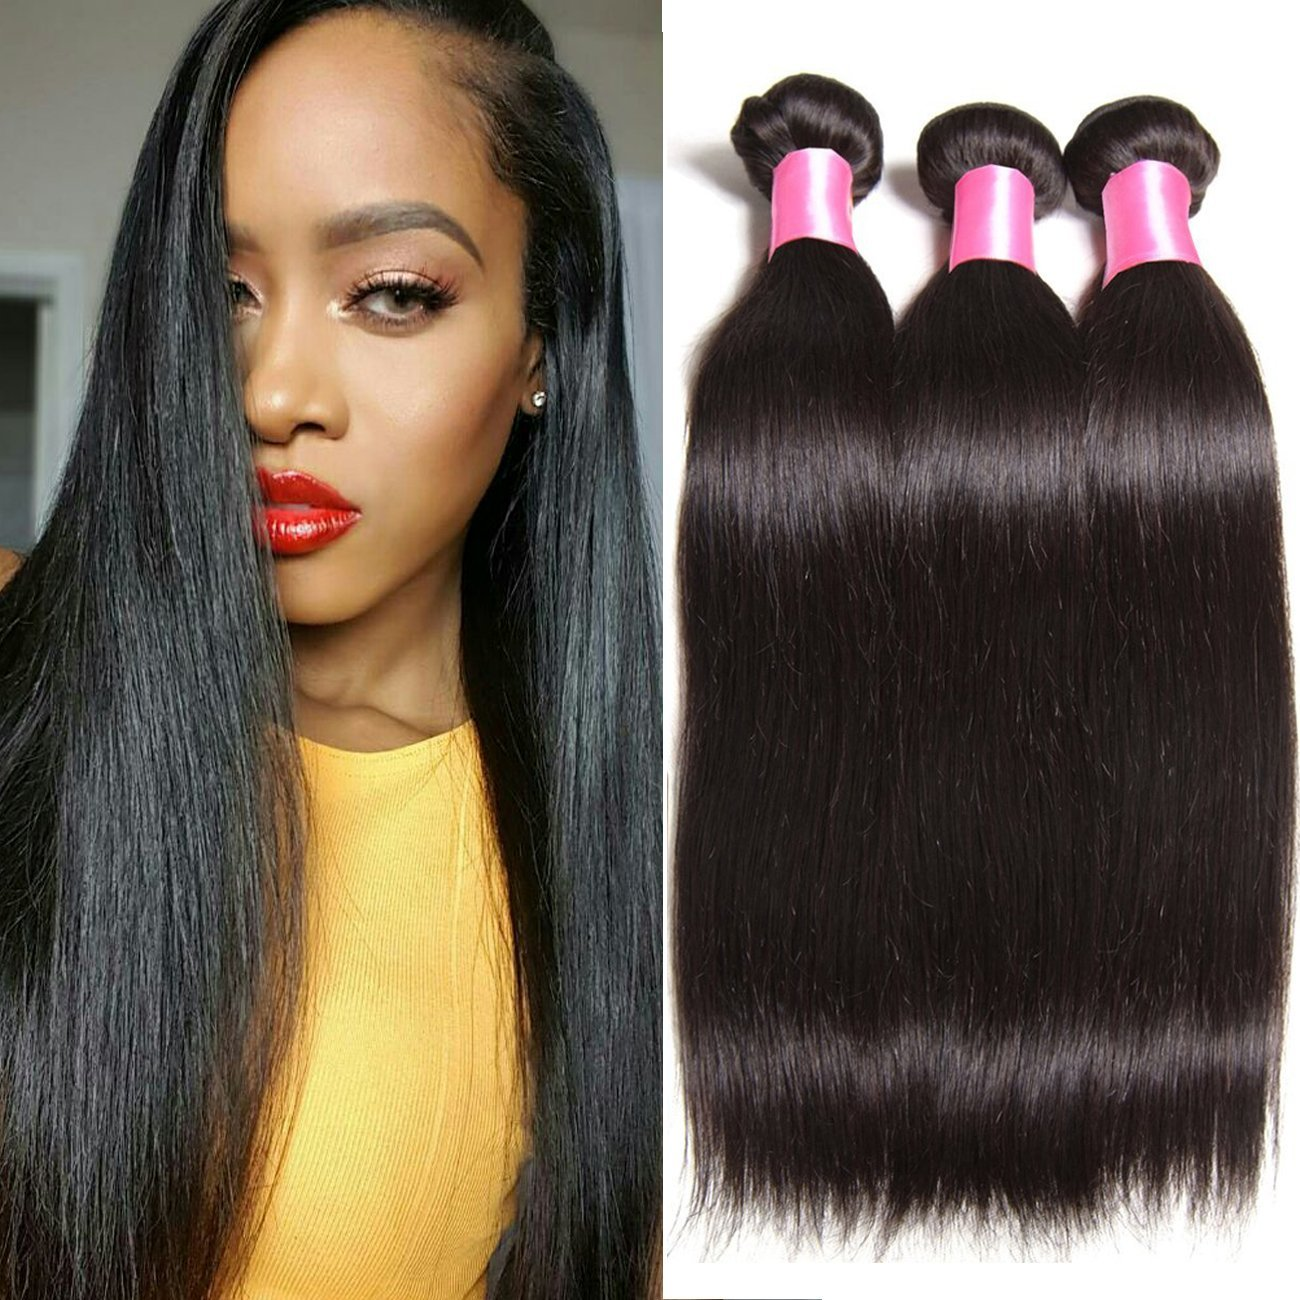 B&F Hair 6a Brazilian Virgin Straight Hair Weave 4bundles 100% Unprocessed Human Hair Extensions Natural Color Can Be Dyed and Bleached (14 16 18 20)